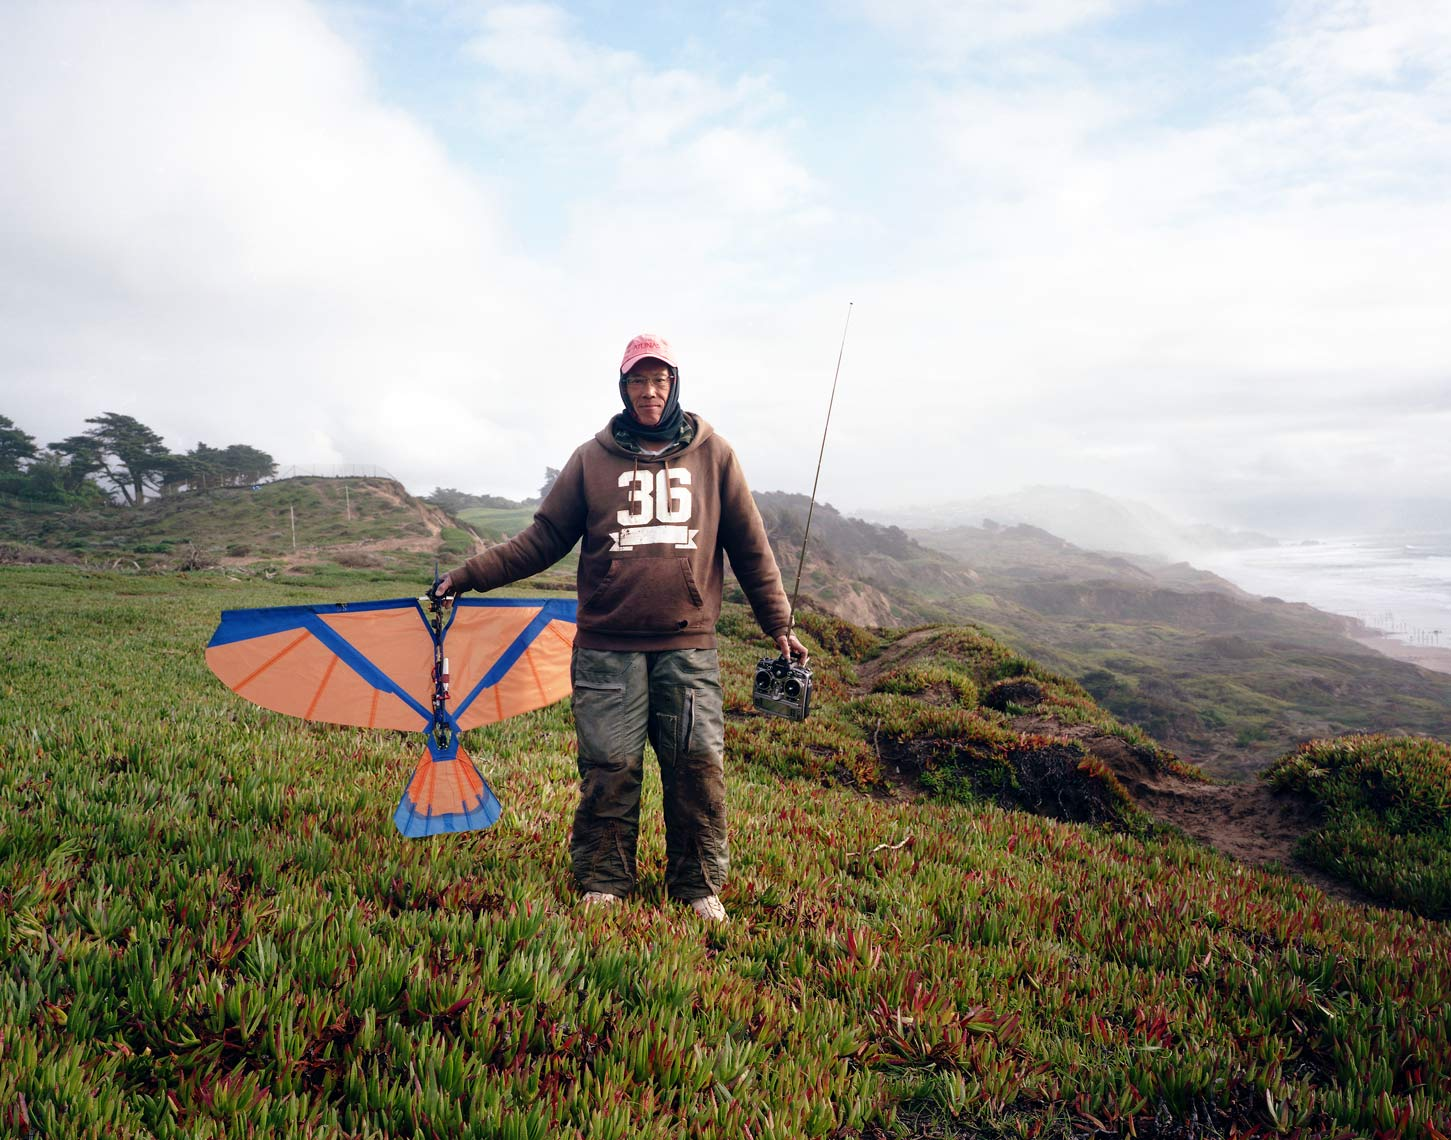 4-Glider_Man_San_Francisco_Beach_1